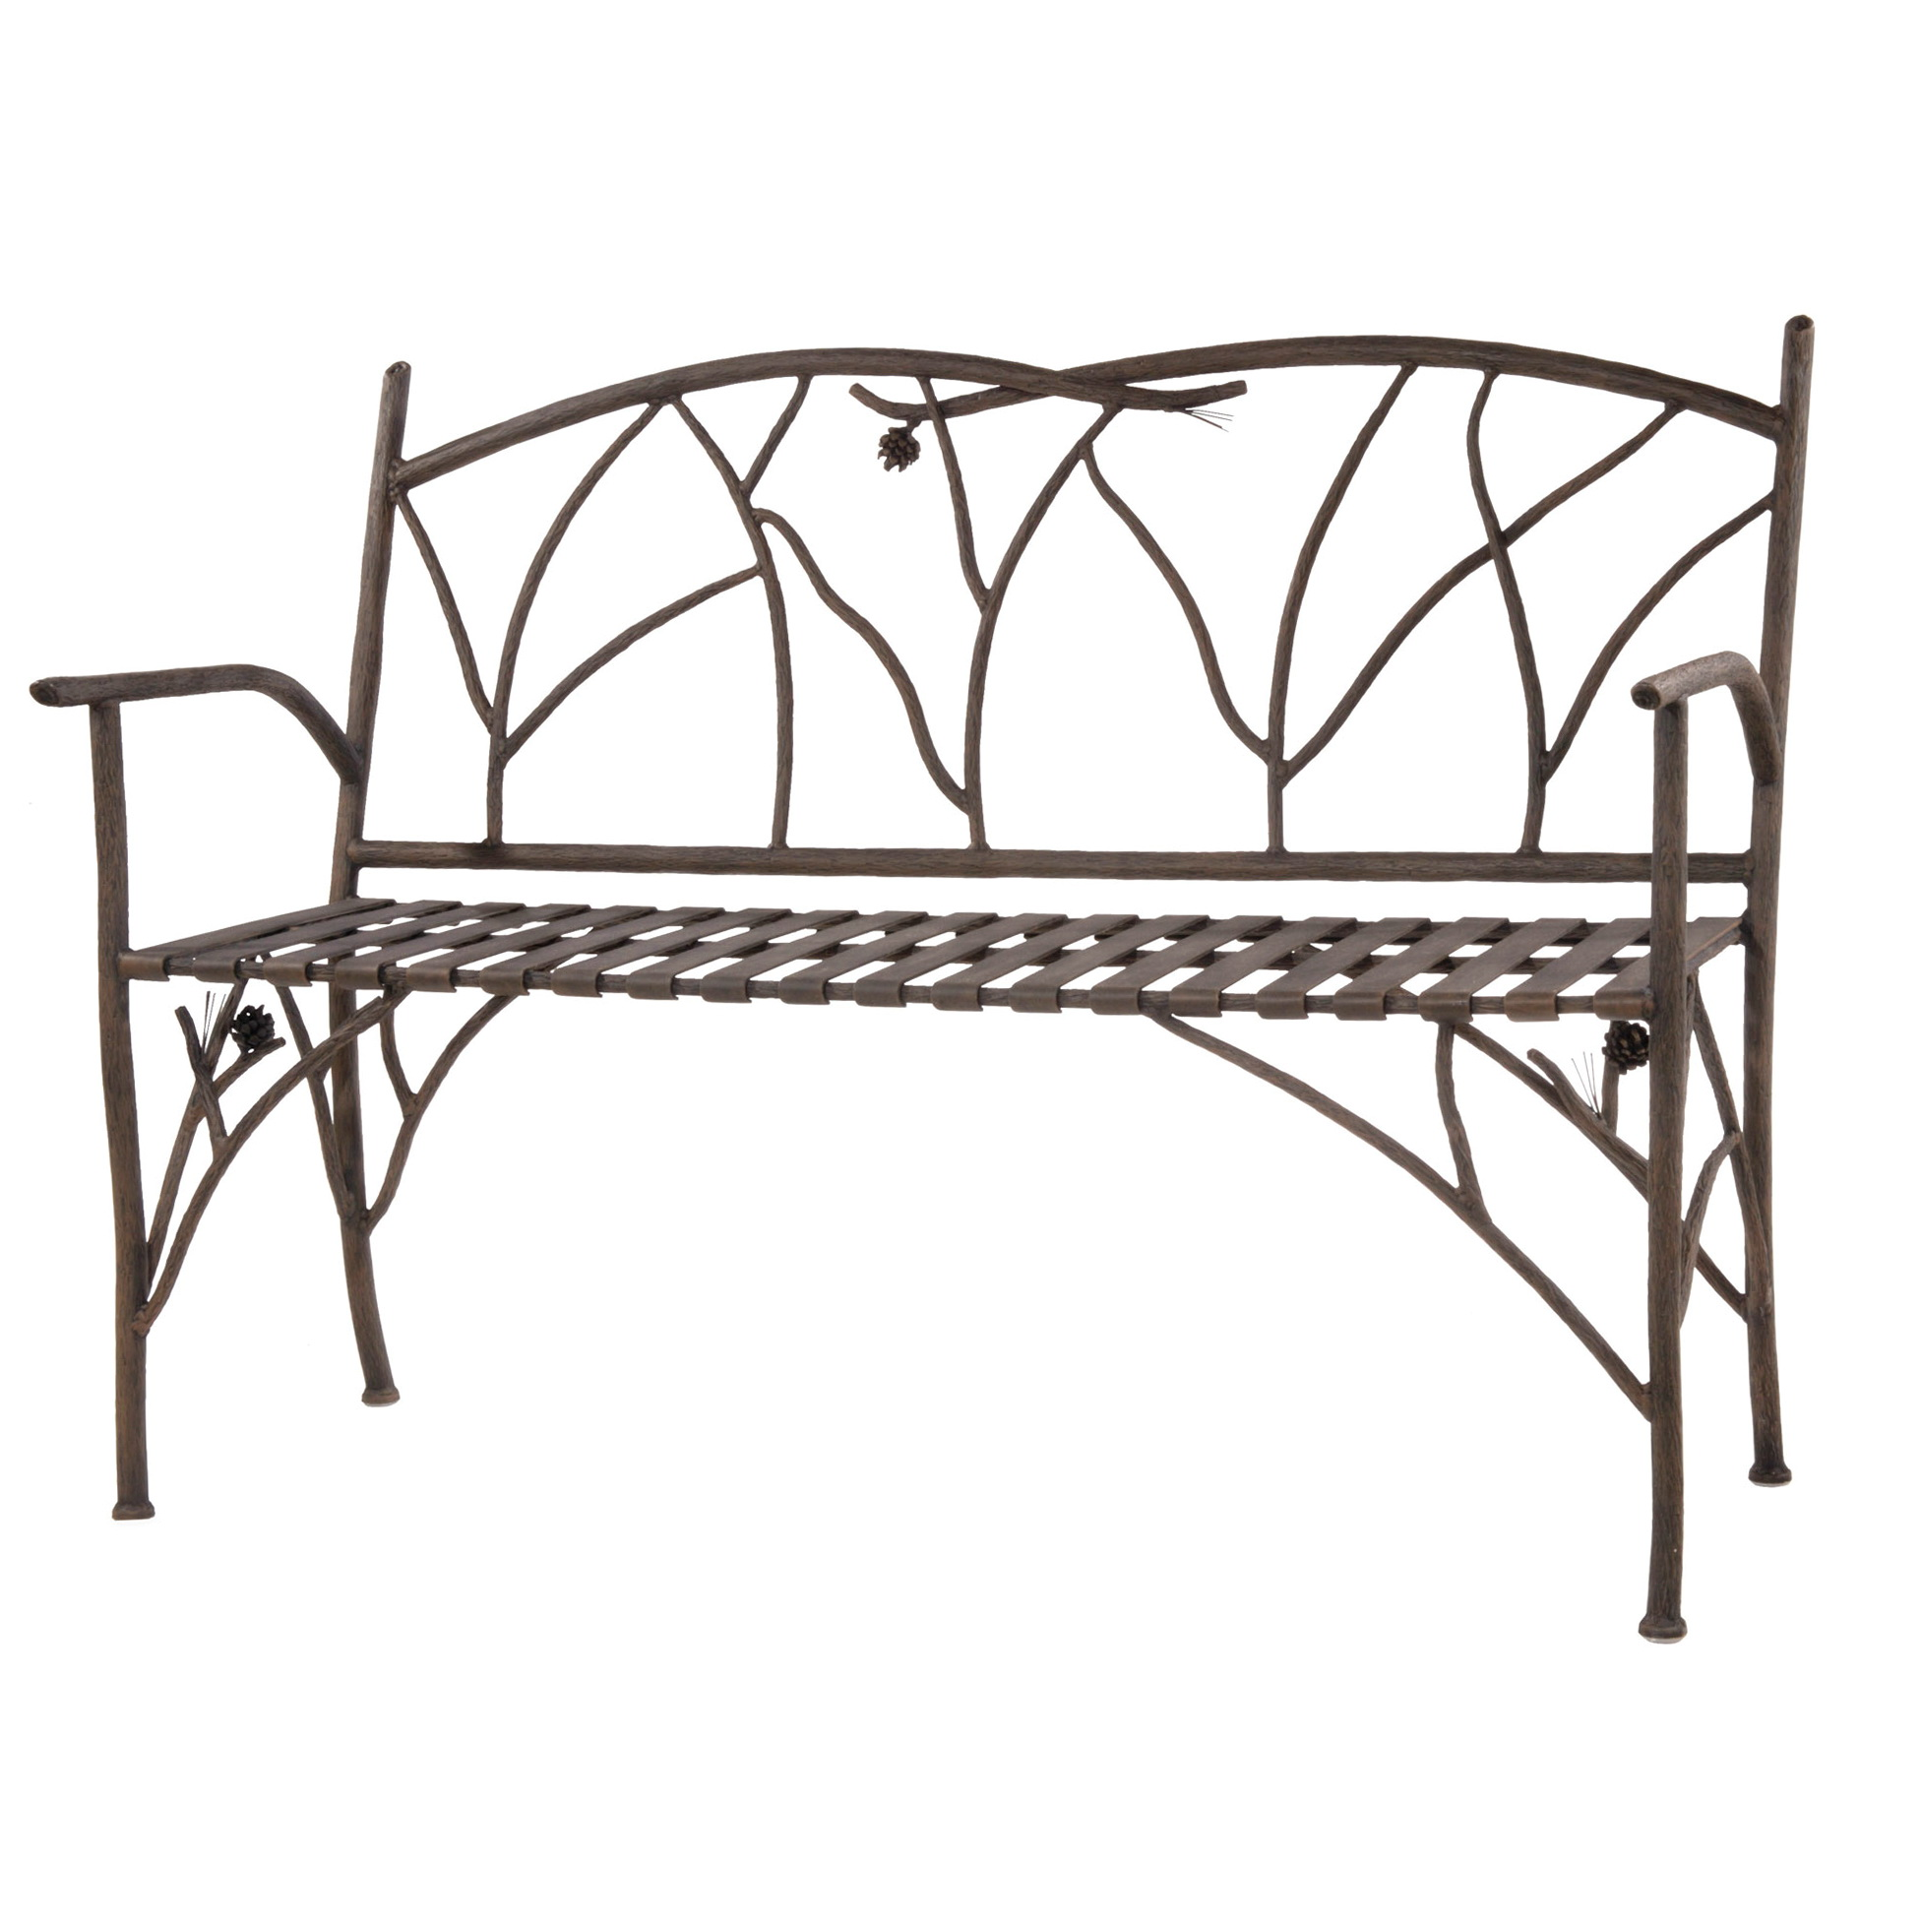 Wrought Iron Benches Outdoor Home Design Ideas